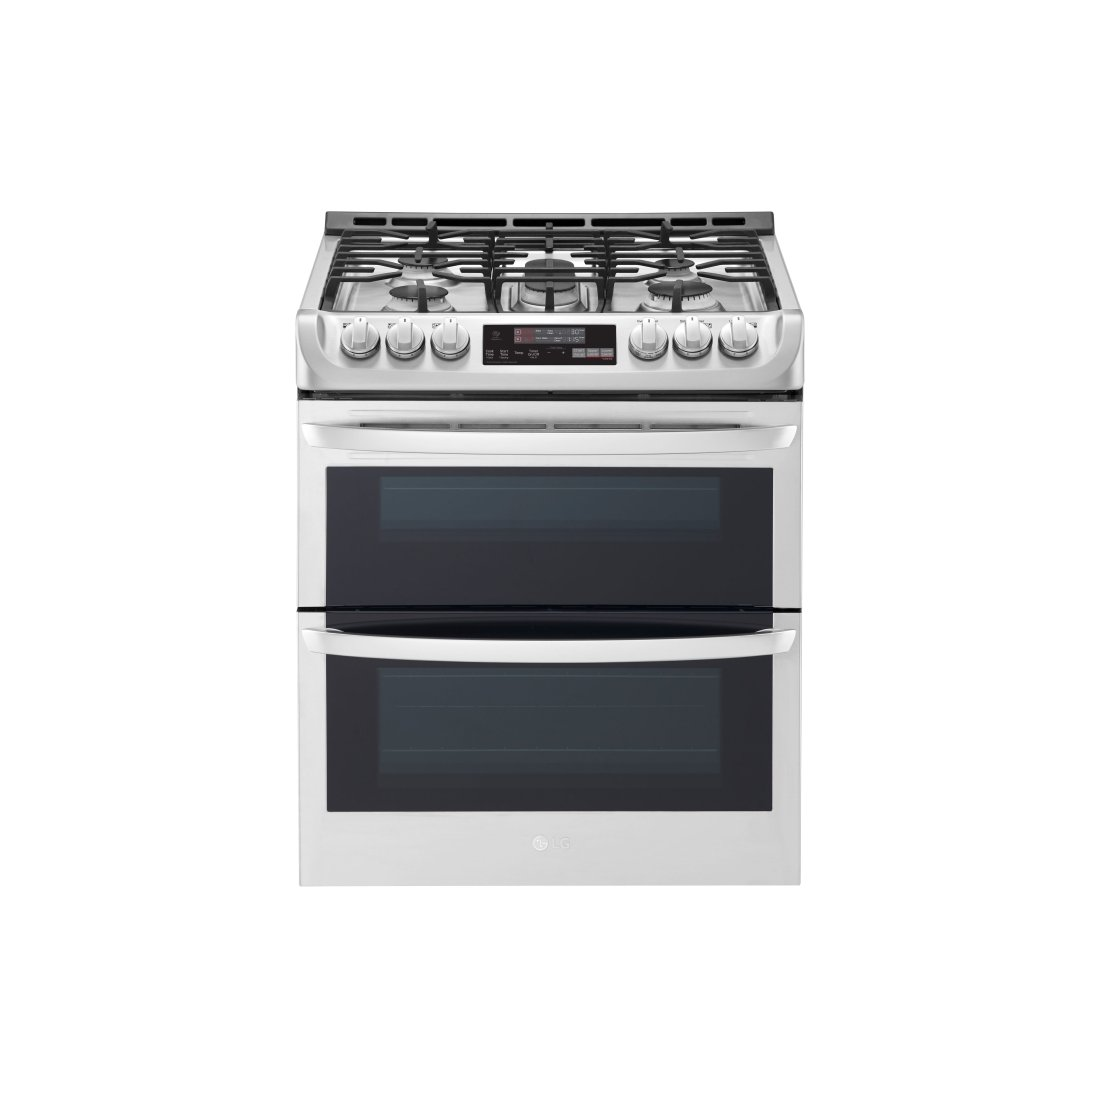 Smart Wifi Enabled Gas Double Oven Slide In Range With Probake Convection And Easyclean Stainless Steel Rc Willey Furniture